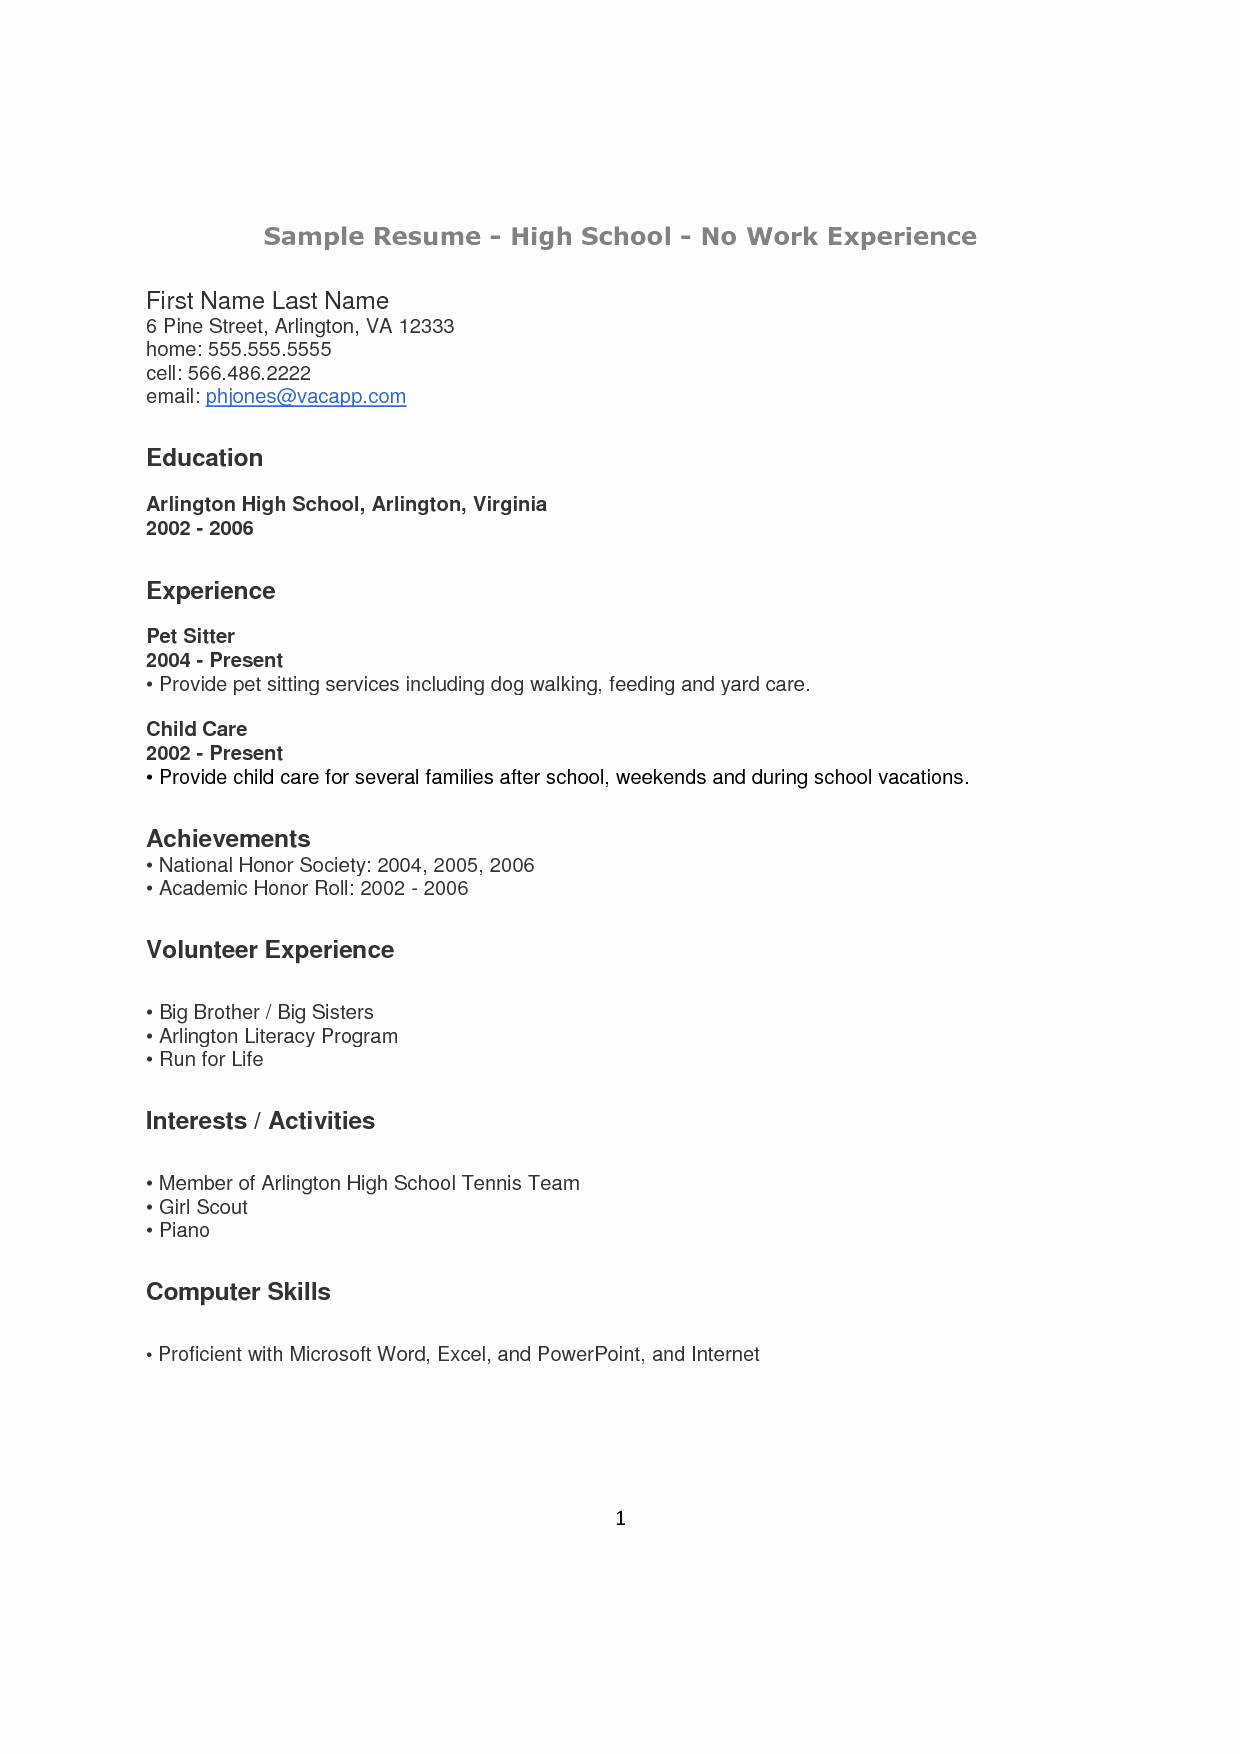 Resume High School Student Inspirational How to Make A Resume for A Highschool Student with No